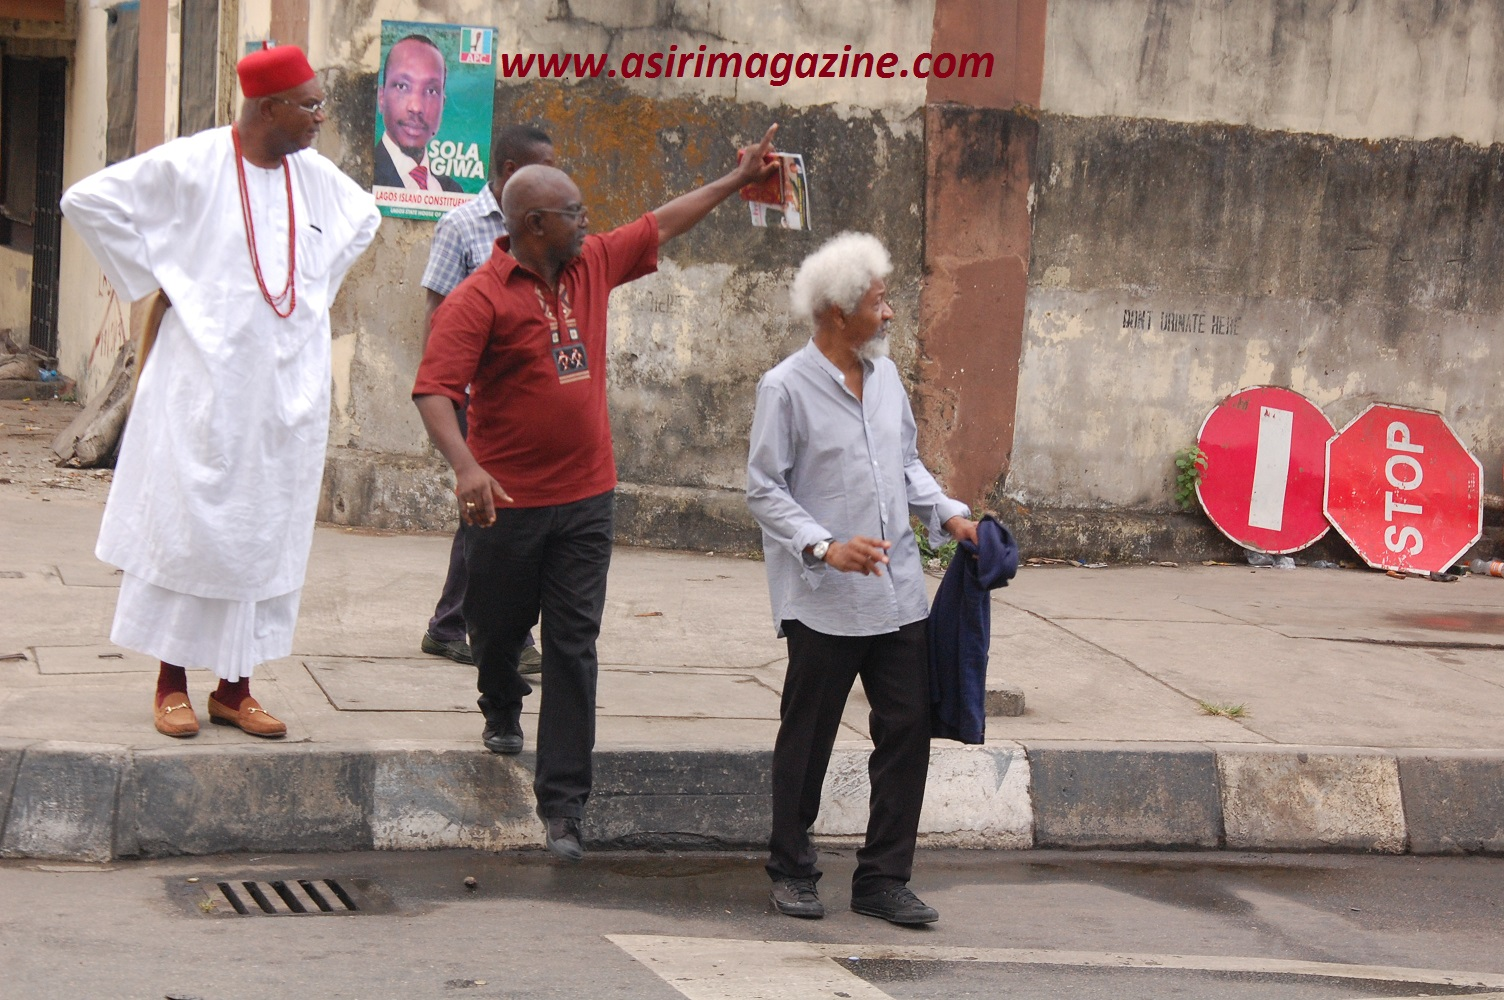 HRM The Obi of Onitsha,Mr Theo Lawson and Prof Wole Soyinka